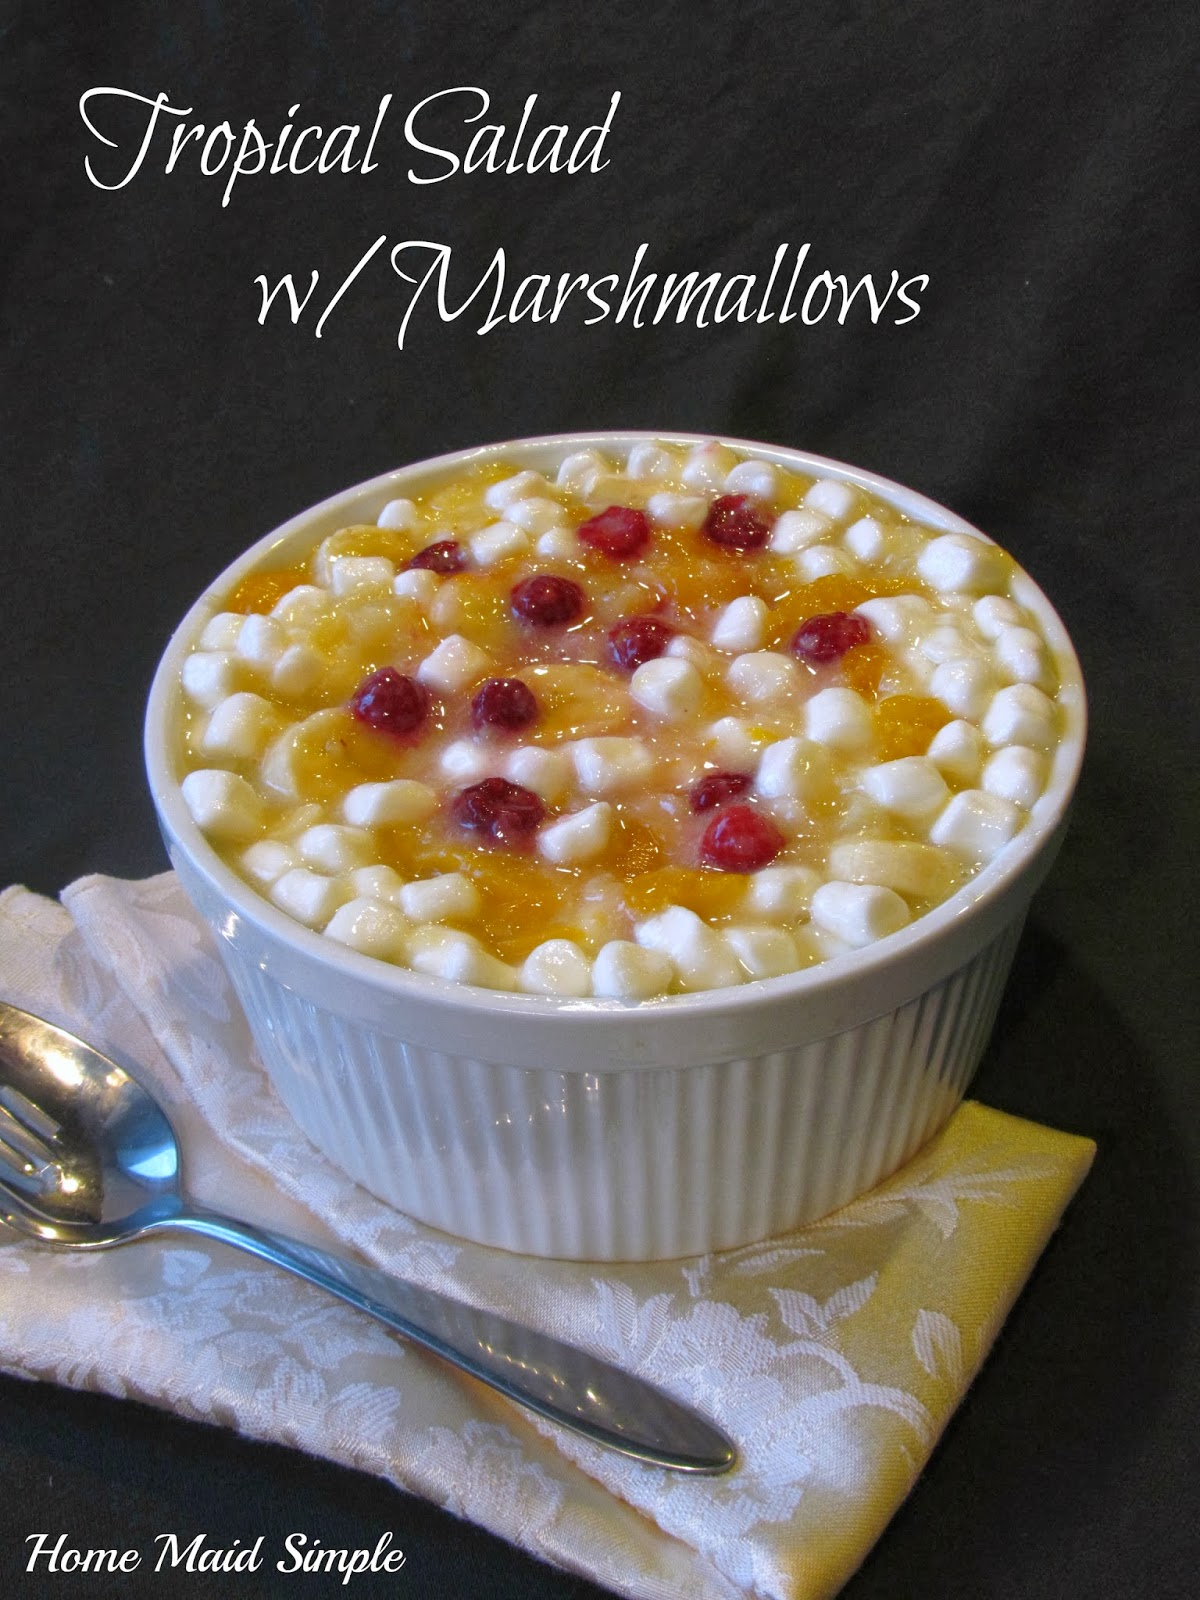 Tropical Salad with Marshmallows from Home Maid Simple